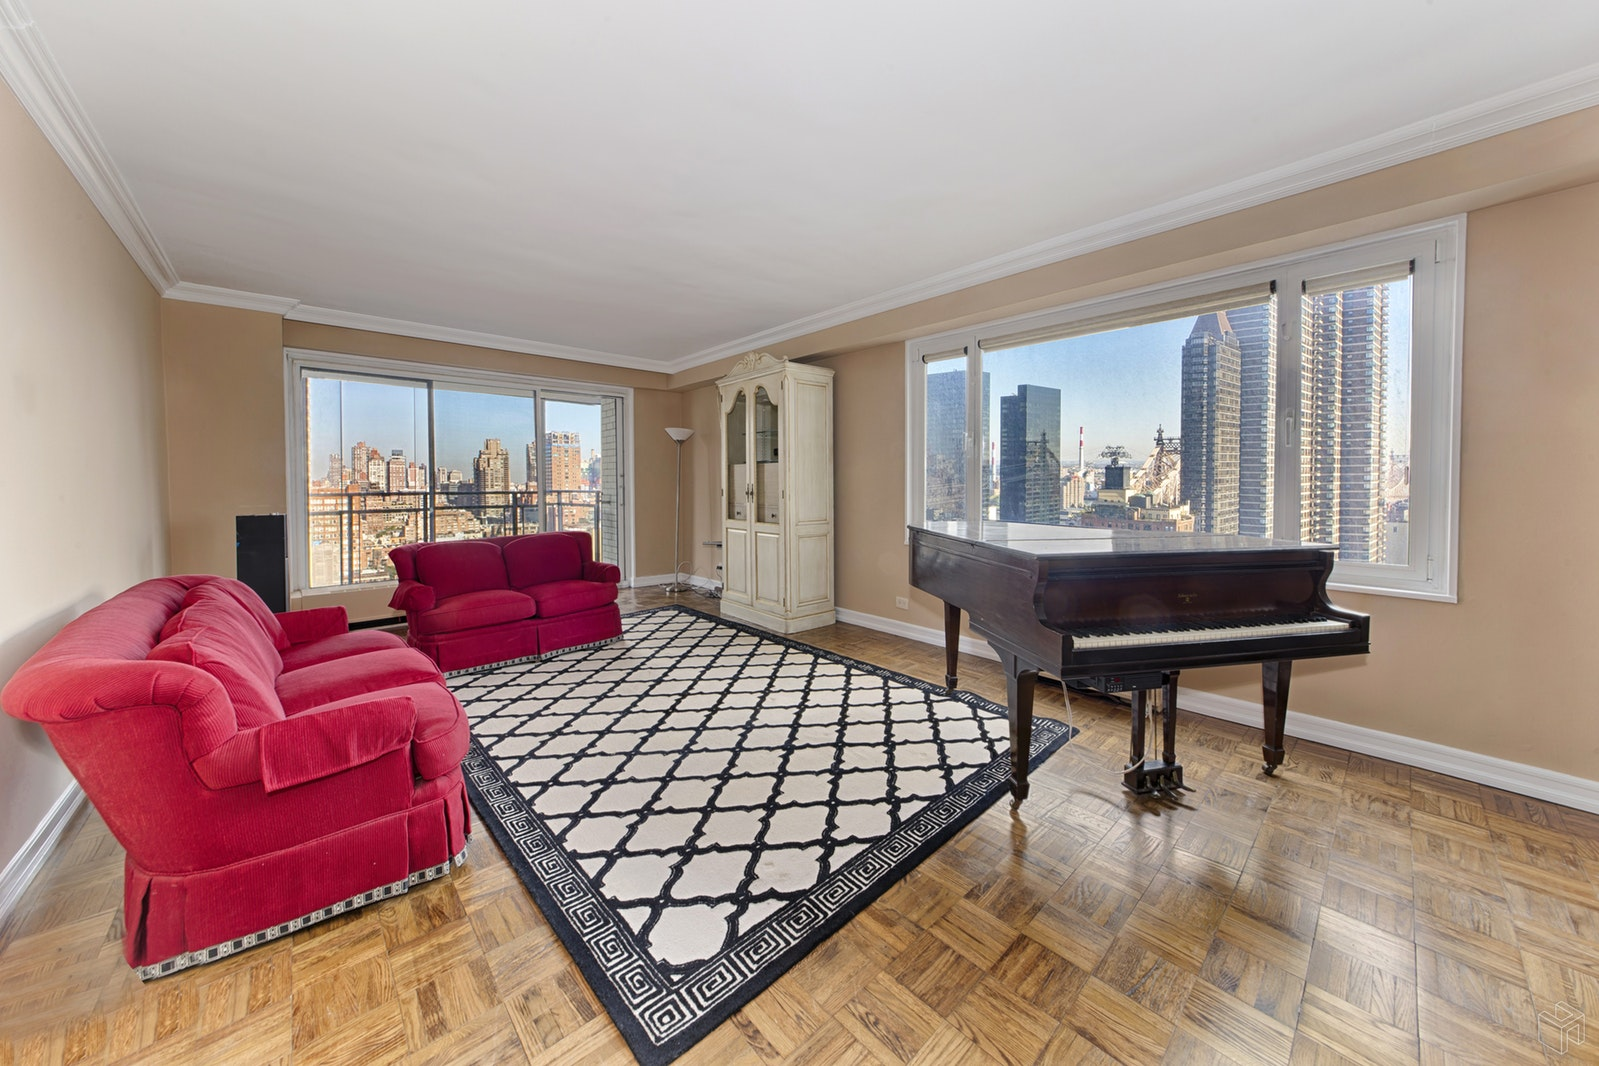 303 East 57th Street 20jk, Midtown East, NYC, 10022, $850,000, Property For Sale, Halstead Real Estate, Photo 2